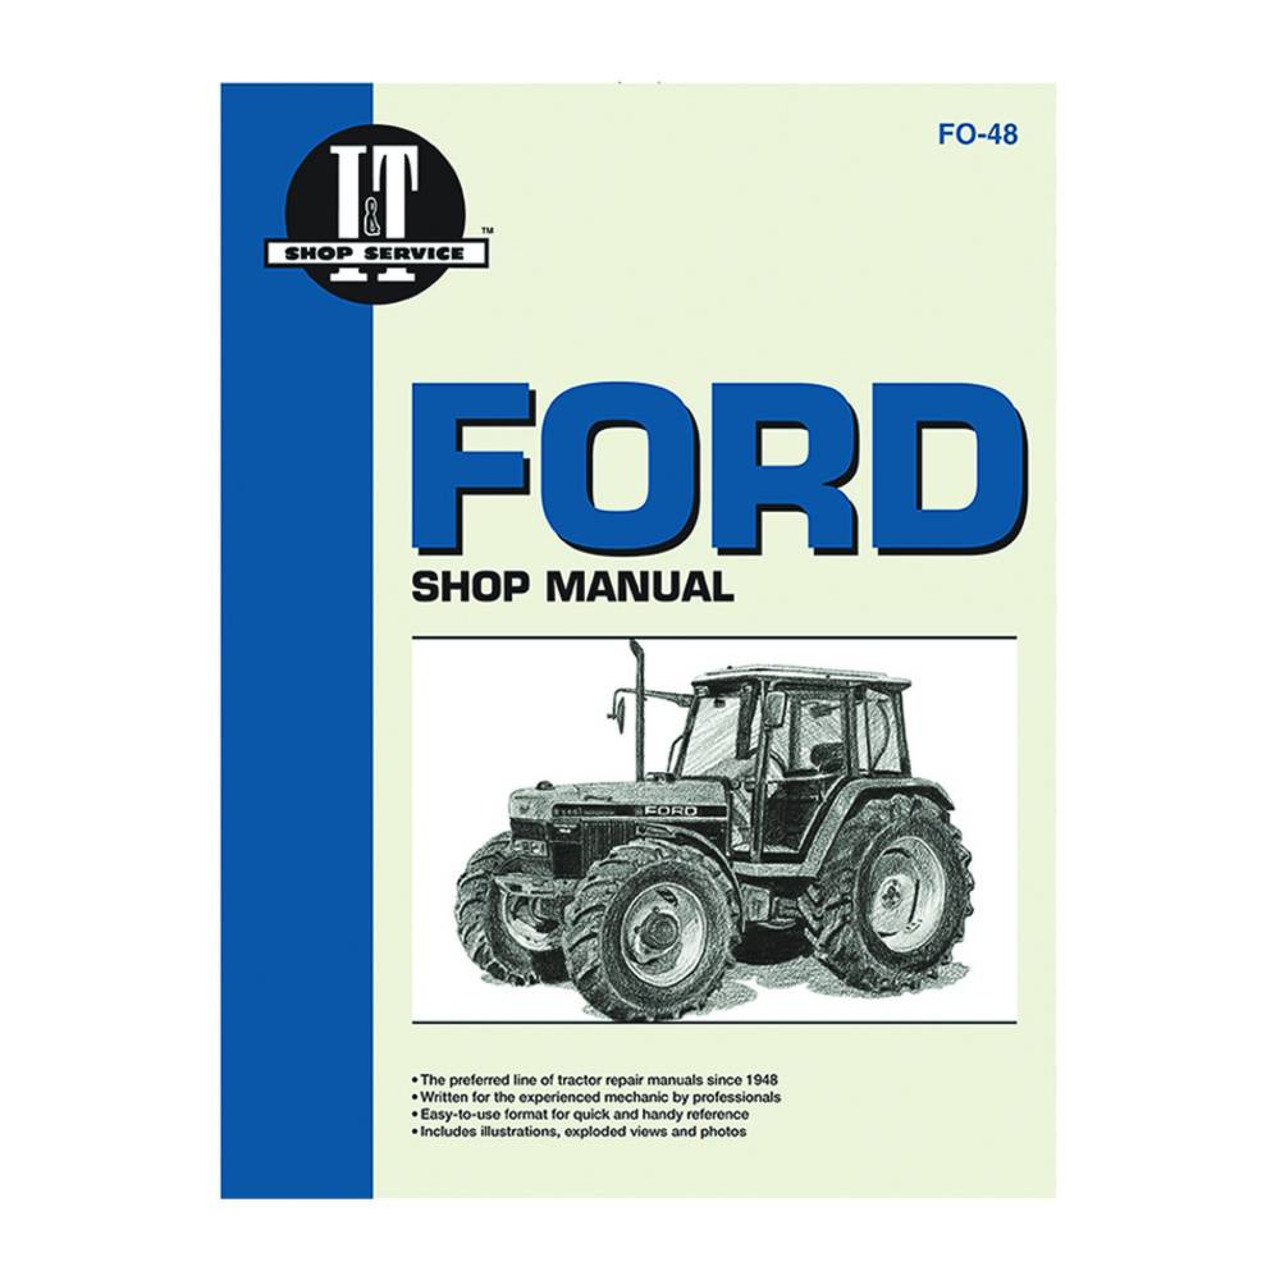 medium resolution of ford tractor wiring harness 7740 wiring diagram files ford tractor wiring harness 7740